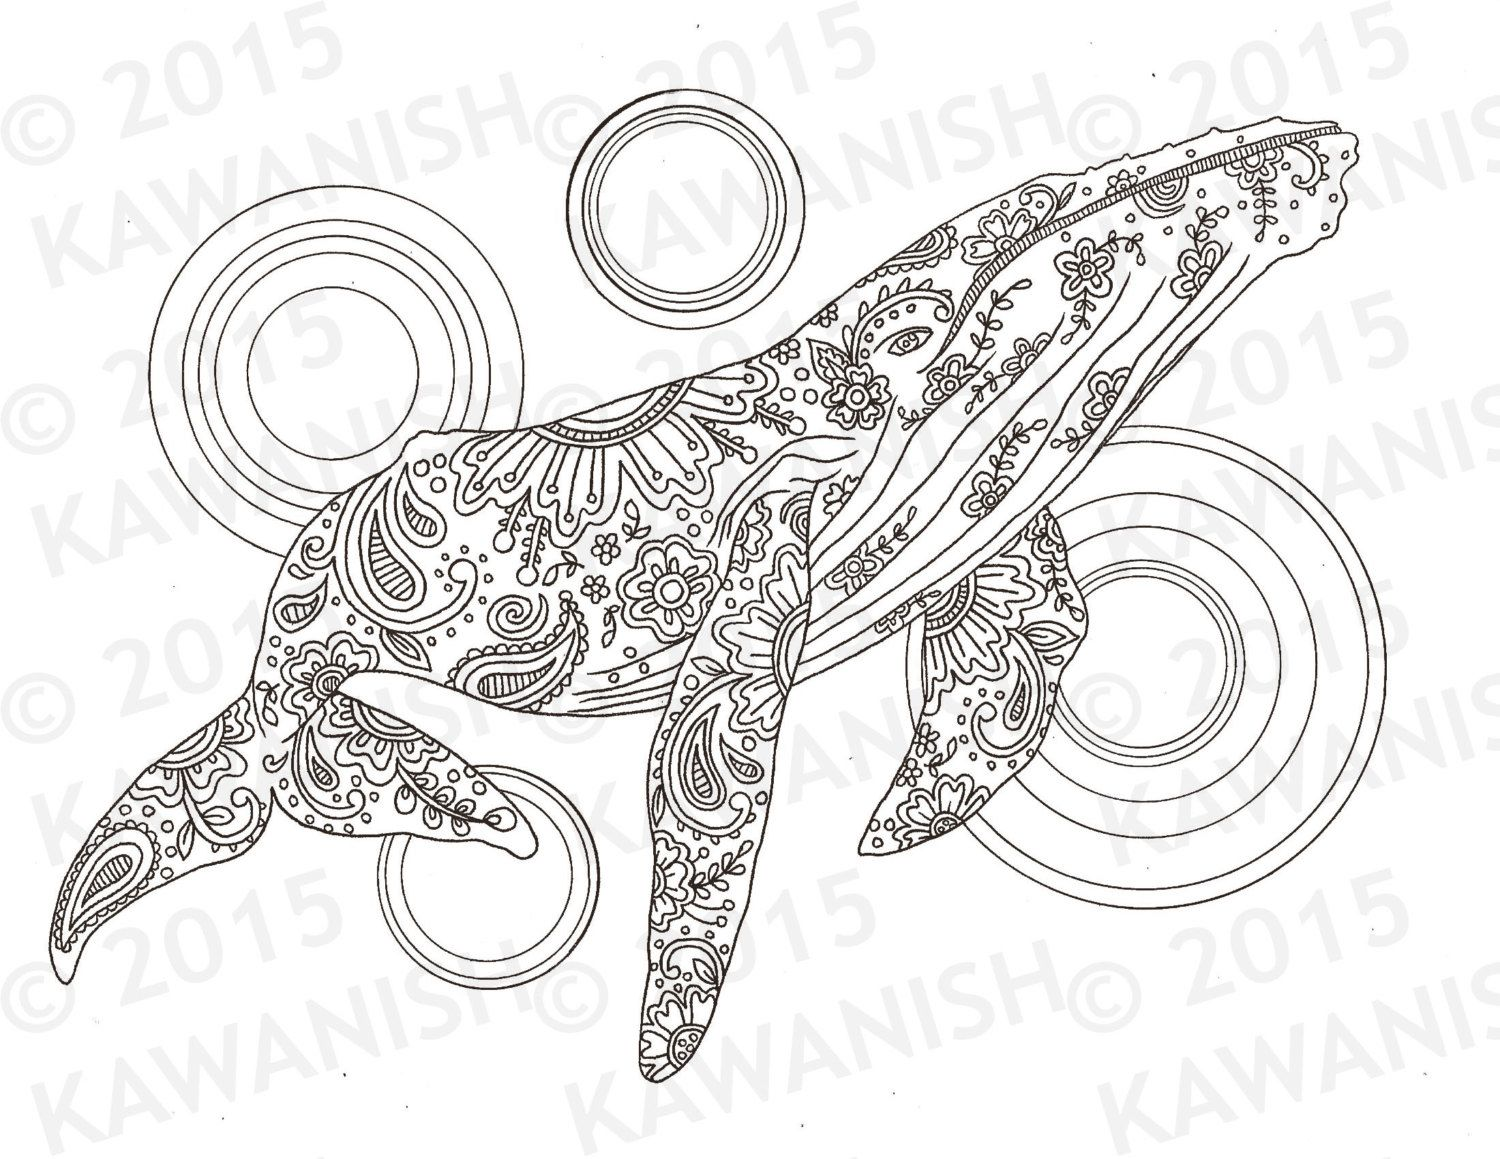 Whale Adult Coloring Page Gift Wall Art Zentangle Door Kawanish Op Etsy